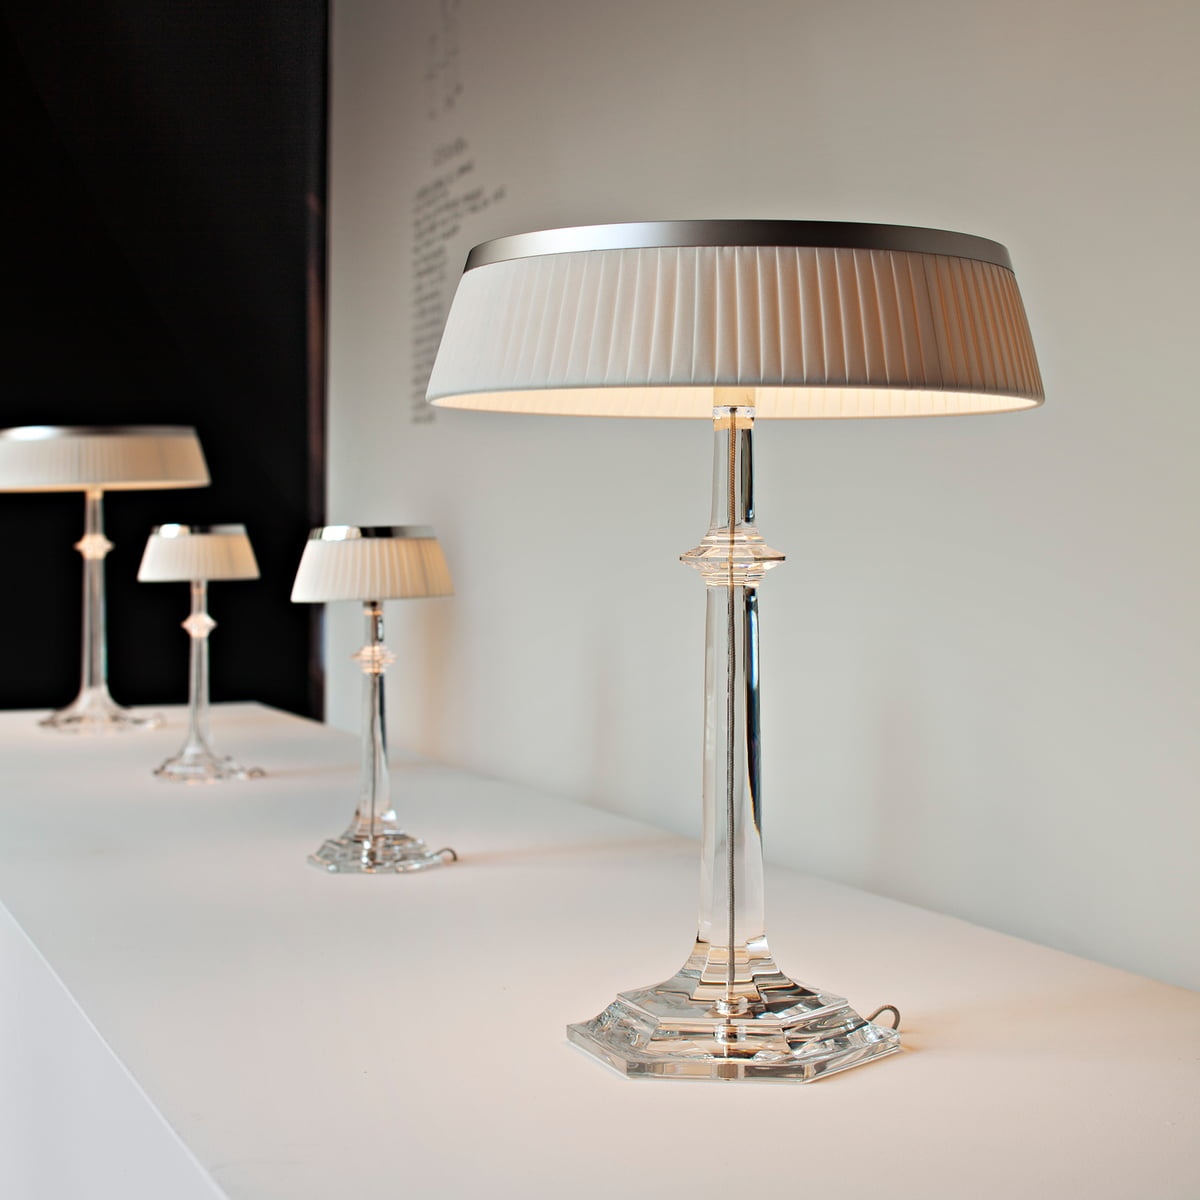 Bon jour versailles led table lamp by flos connox bon jour versailles led table lamp by flos mozeypictures Image collections